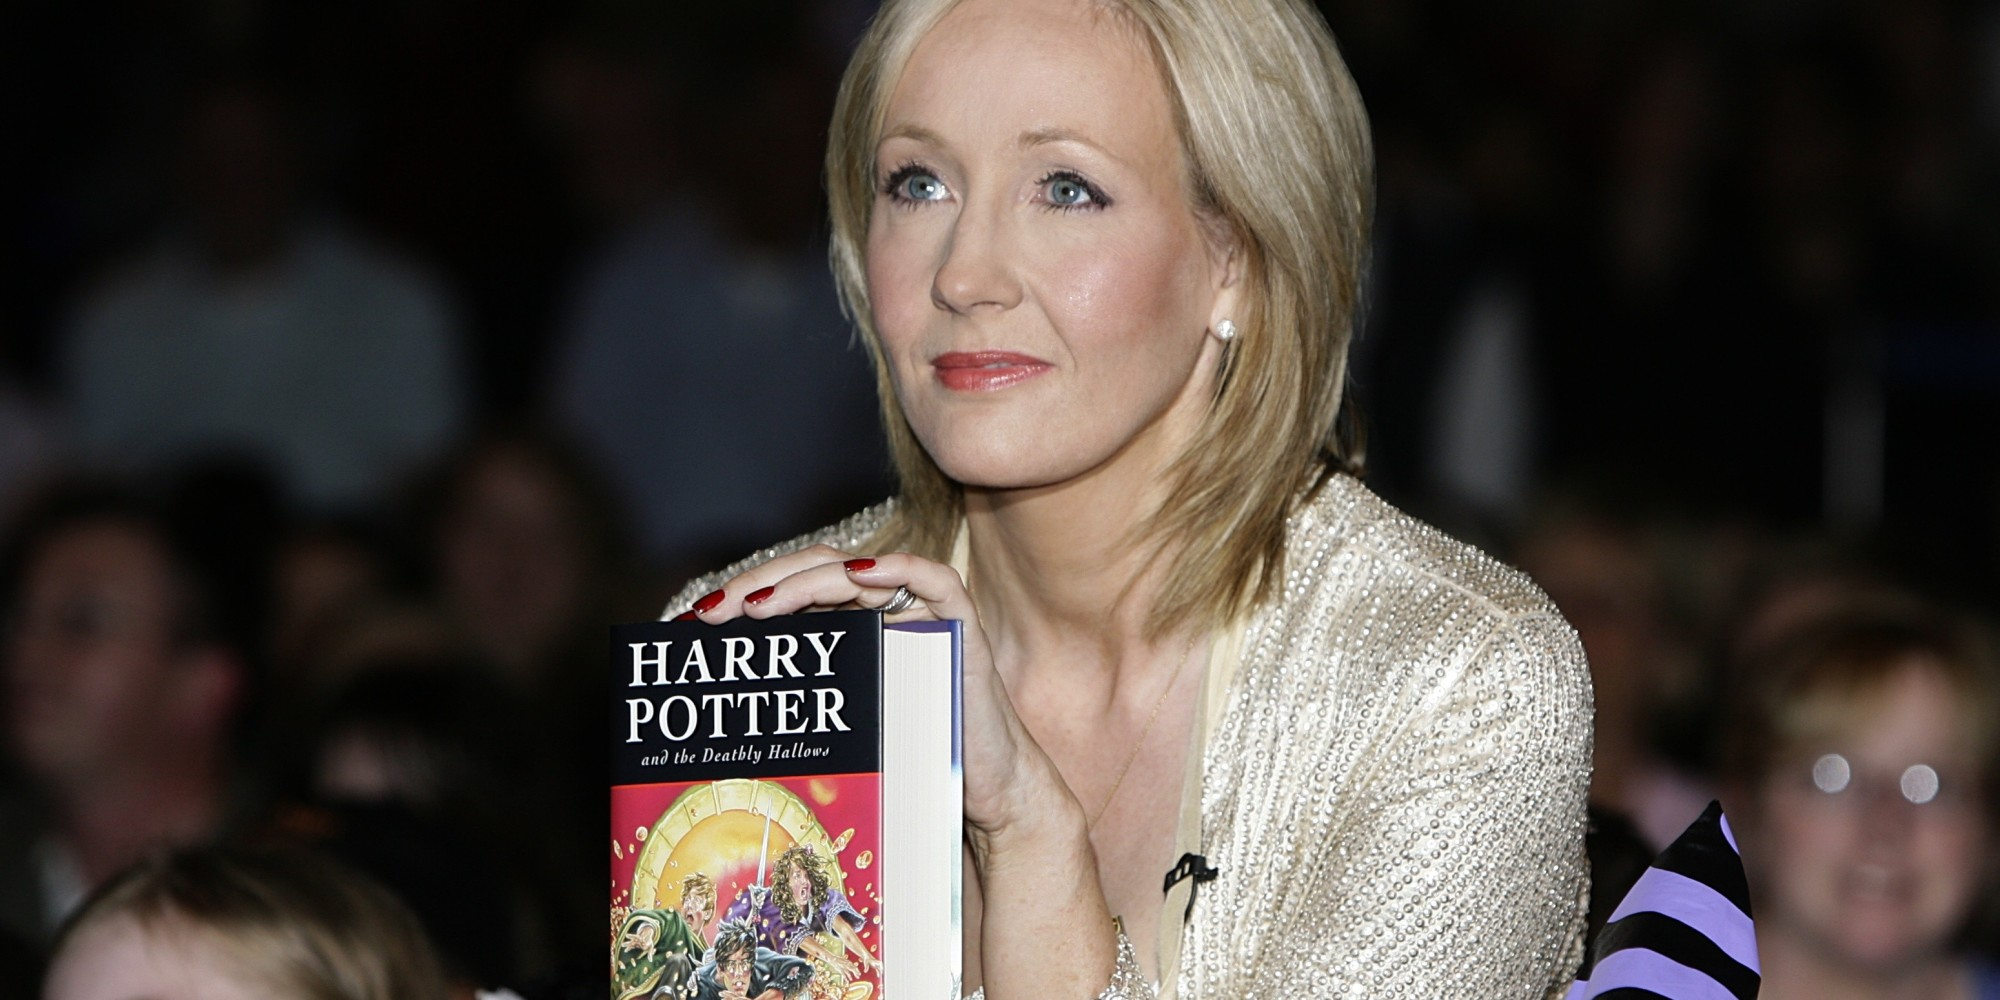 Is jk rowling writing a new harry potter book